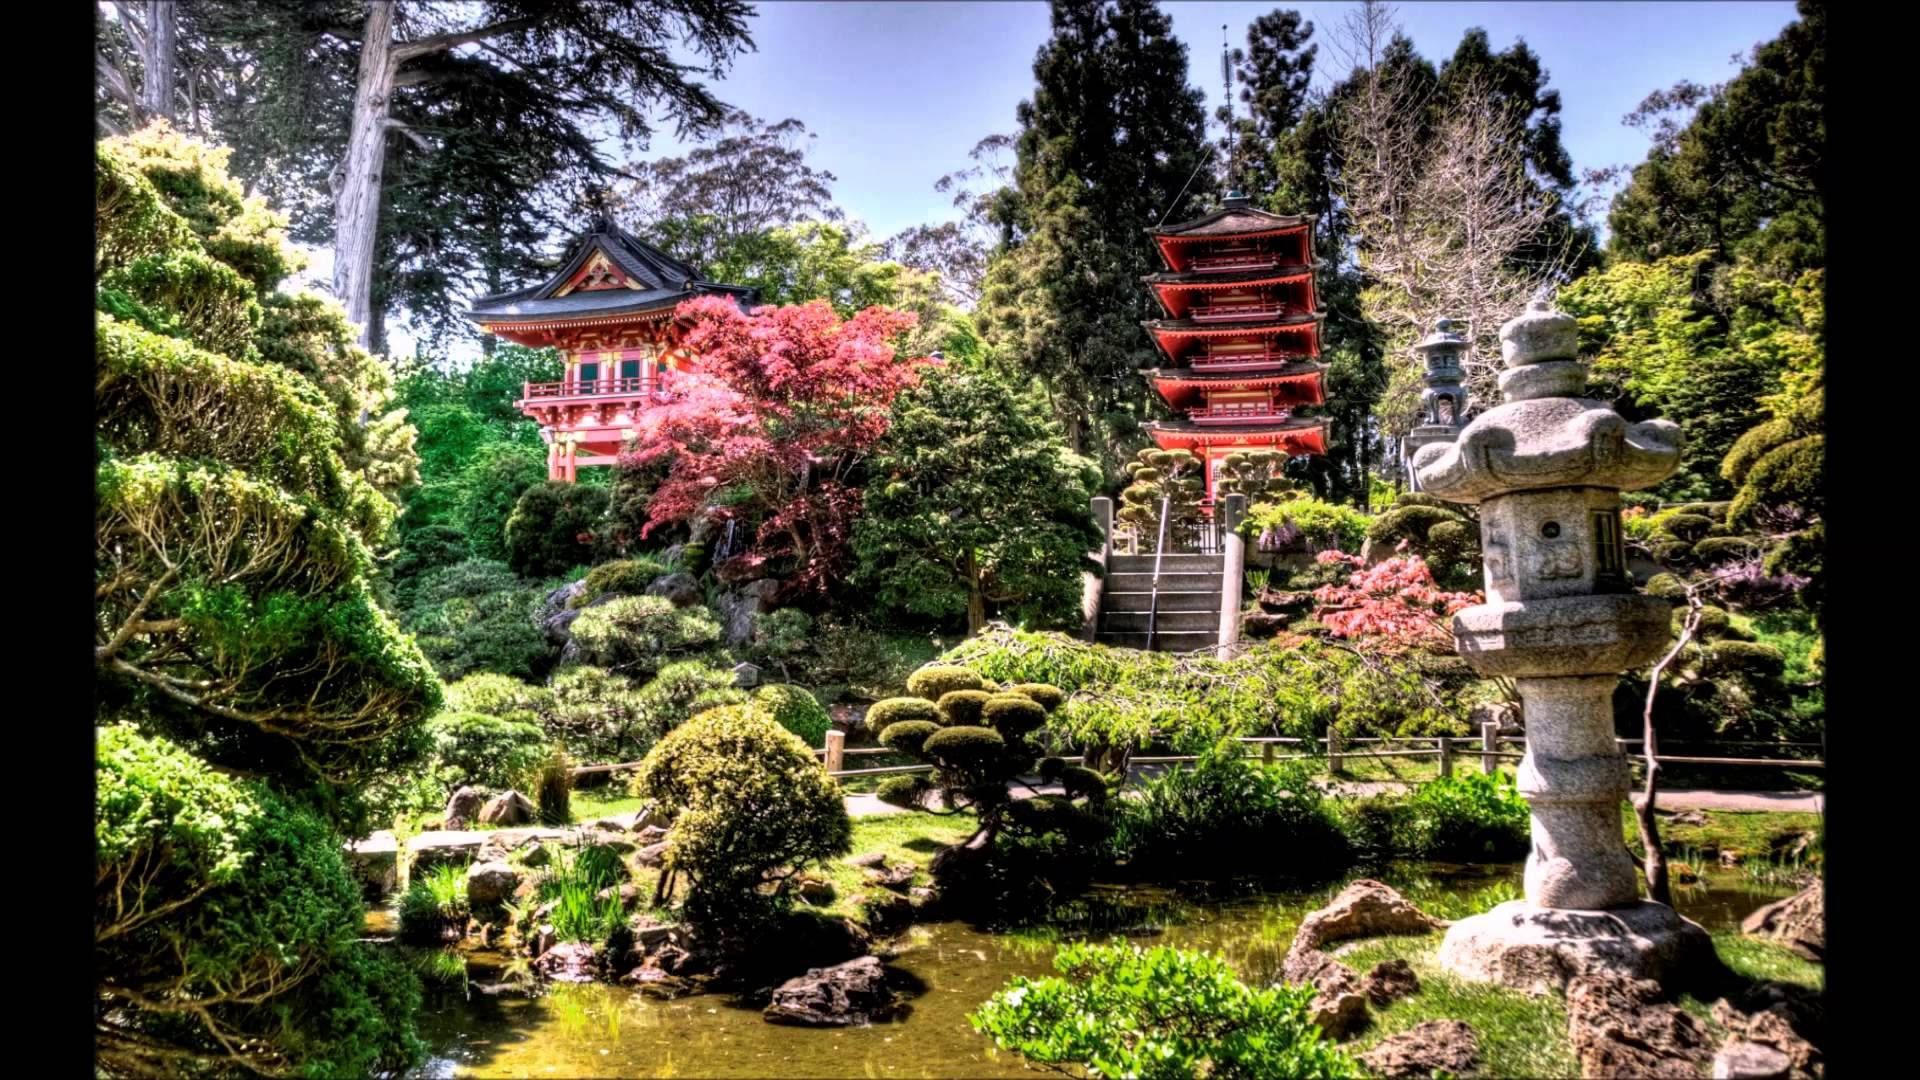 This Is A Japanese Garden Design, Garden Inspiration That Has